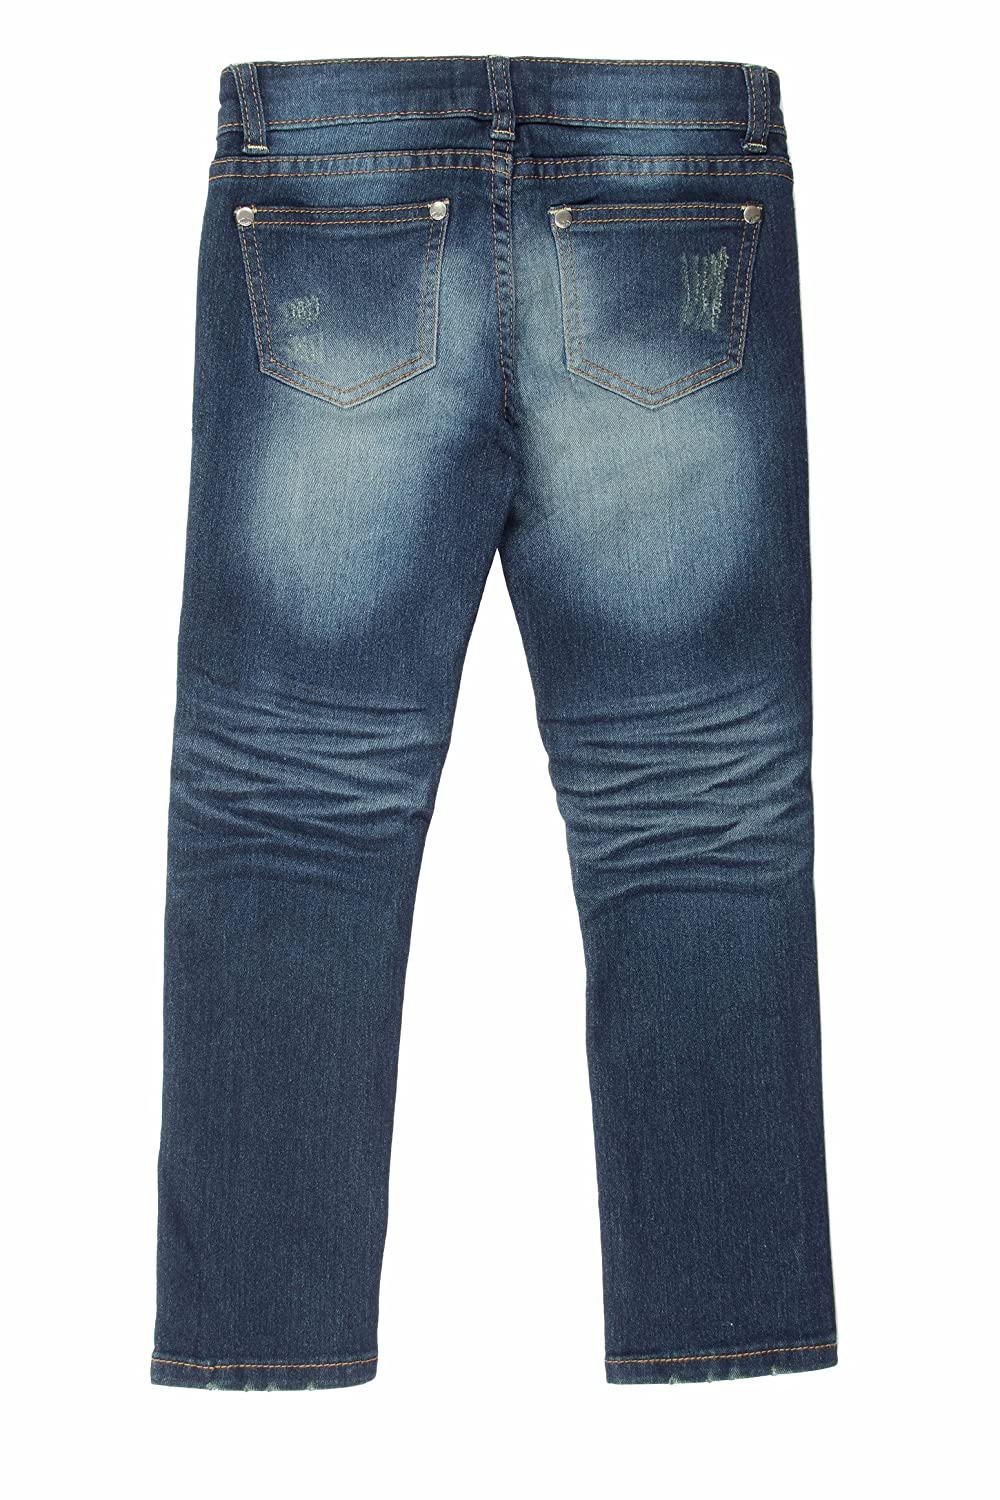 S Fashion2Love 8H016 Super Stretch 5 Pockets Distressed Skinny Jeans for Girls